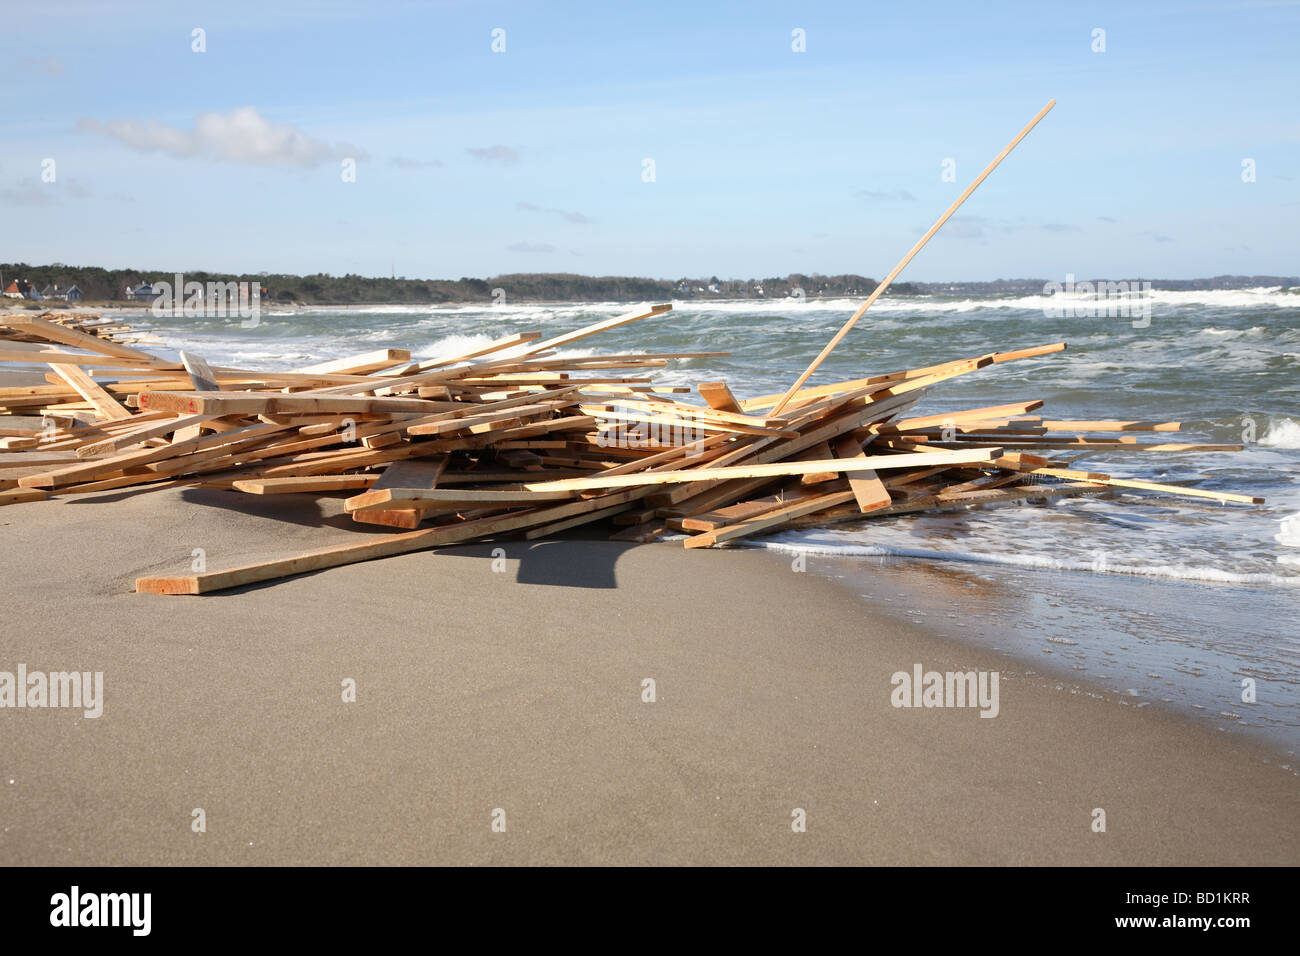 Timber deck cargo washed overboard from a Caribbean cargo vessel in the Kattegat Sea in Denmark and washed ashore Stock Photo